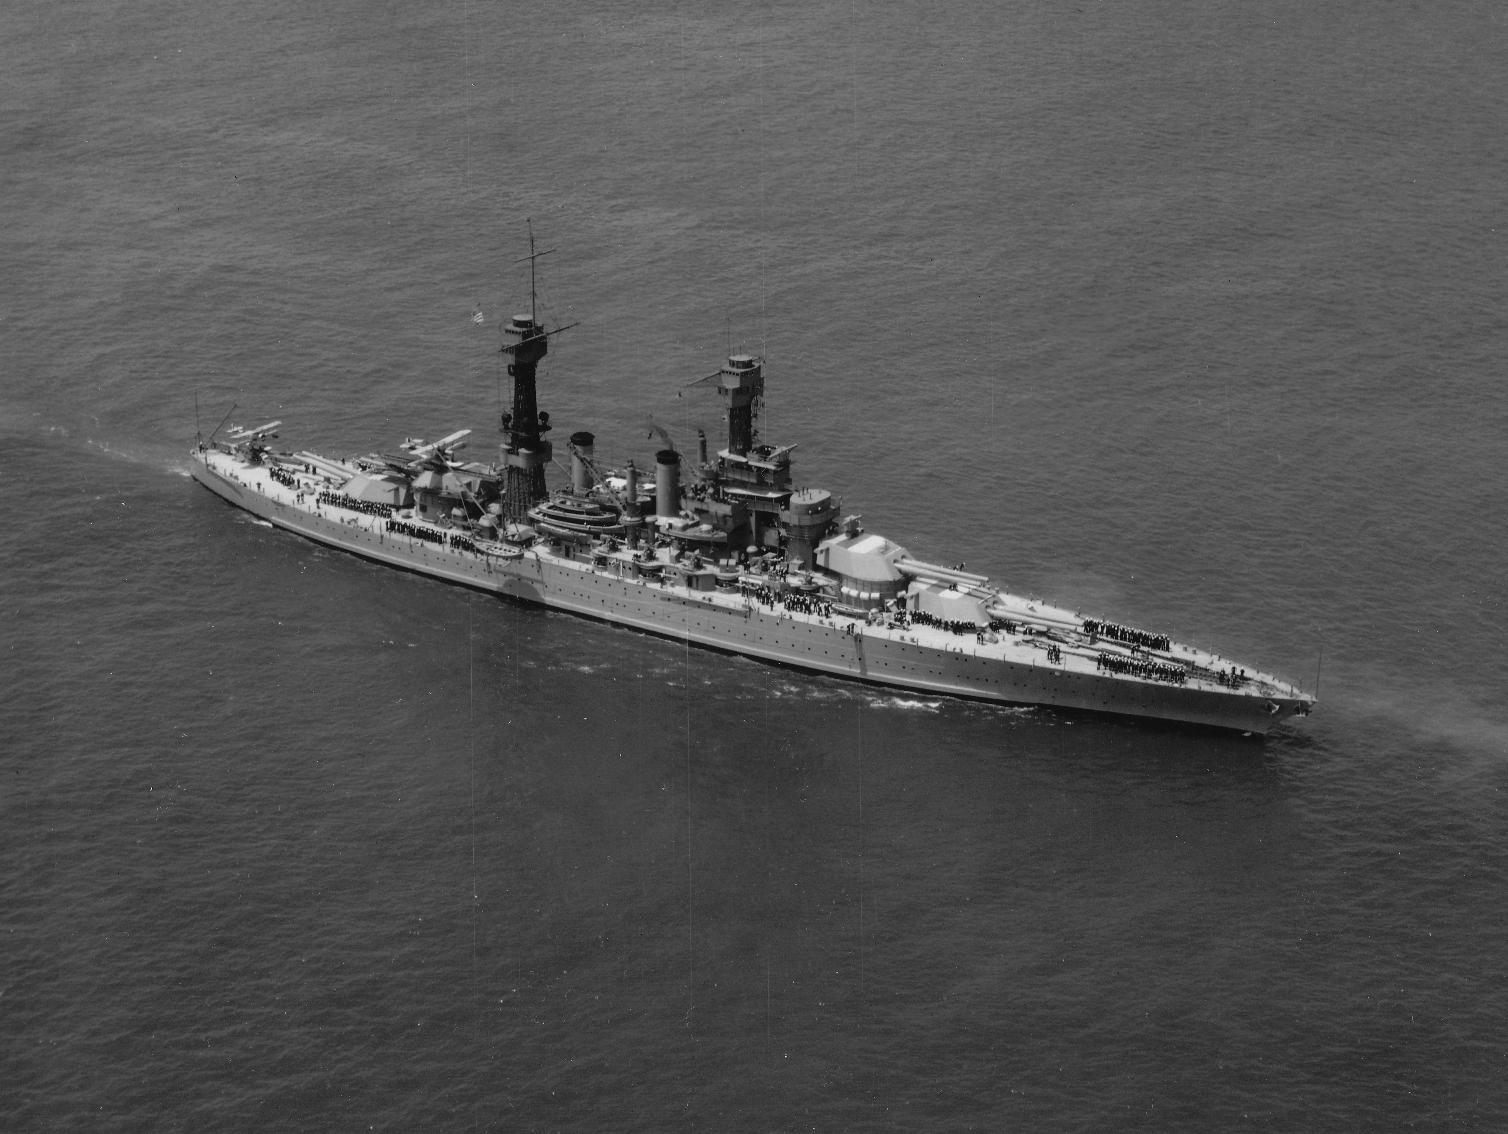 USS West Virginia (BB-48) provides an example of what happens when a ship is decommissioned